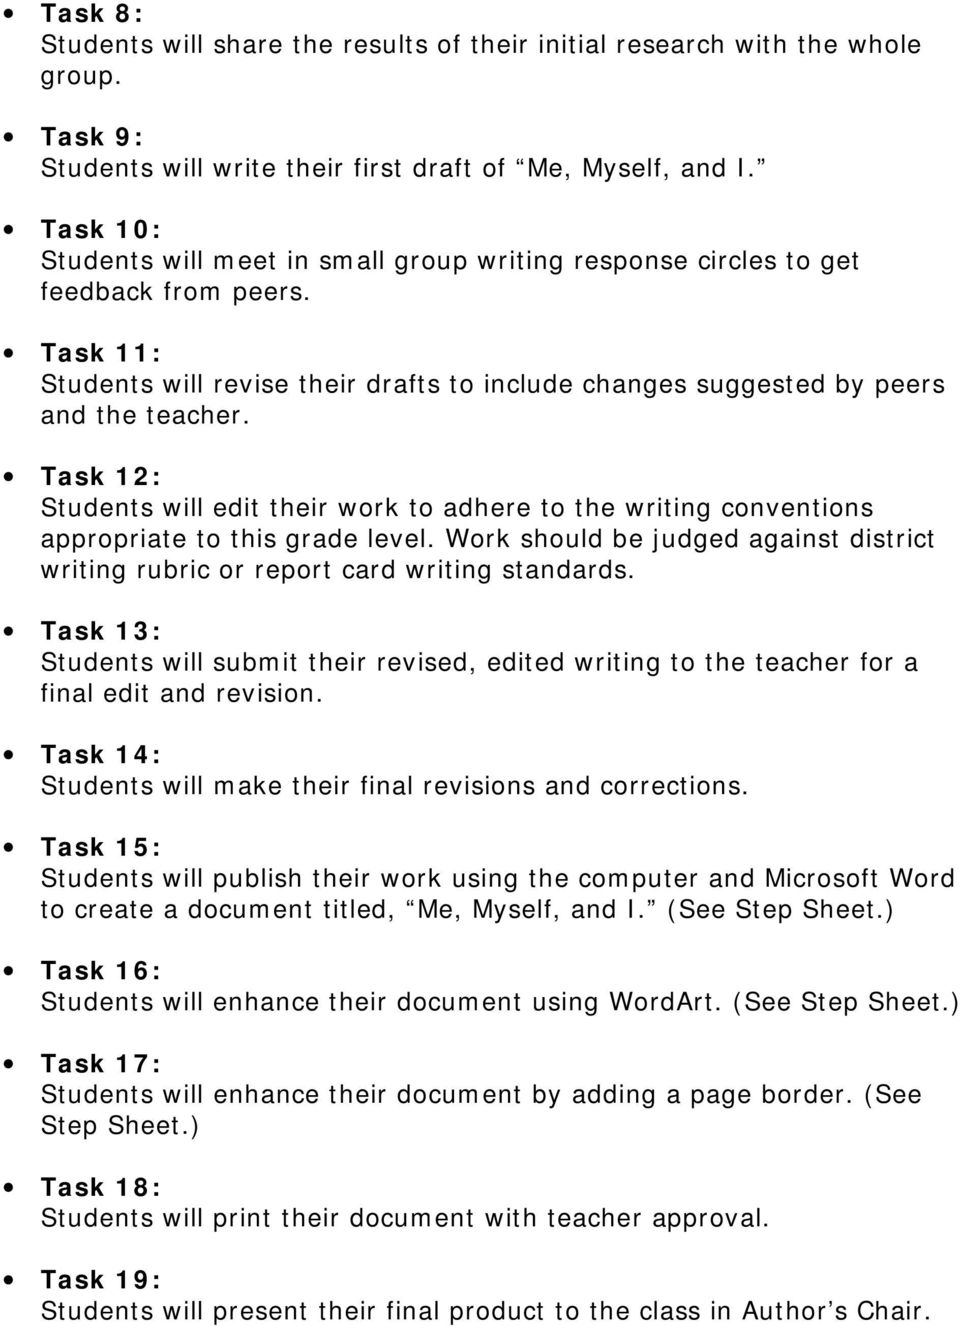 Task 12: Students will edit their work to adhere to the writing conventions appropriate to this grade level. Work should be judged against district writing rubric or report card writing standards.